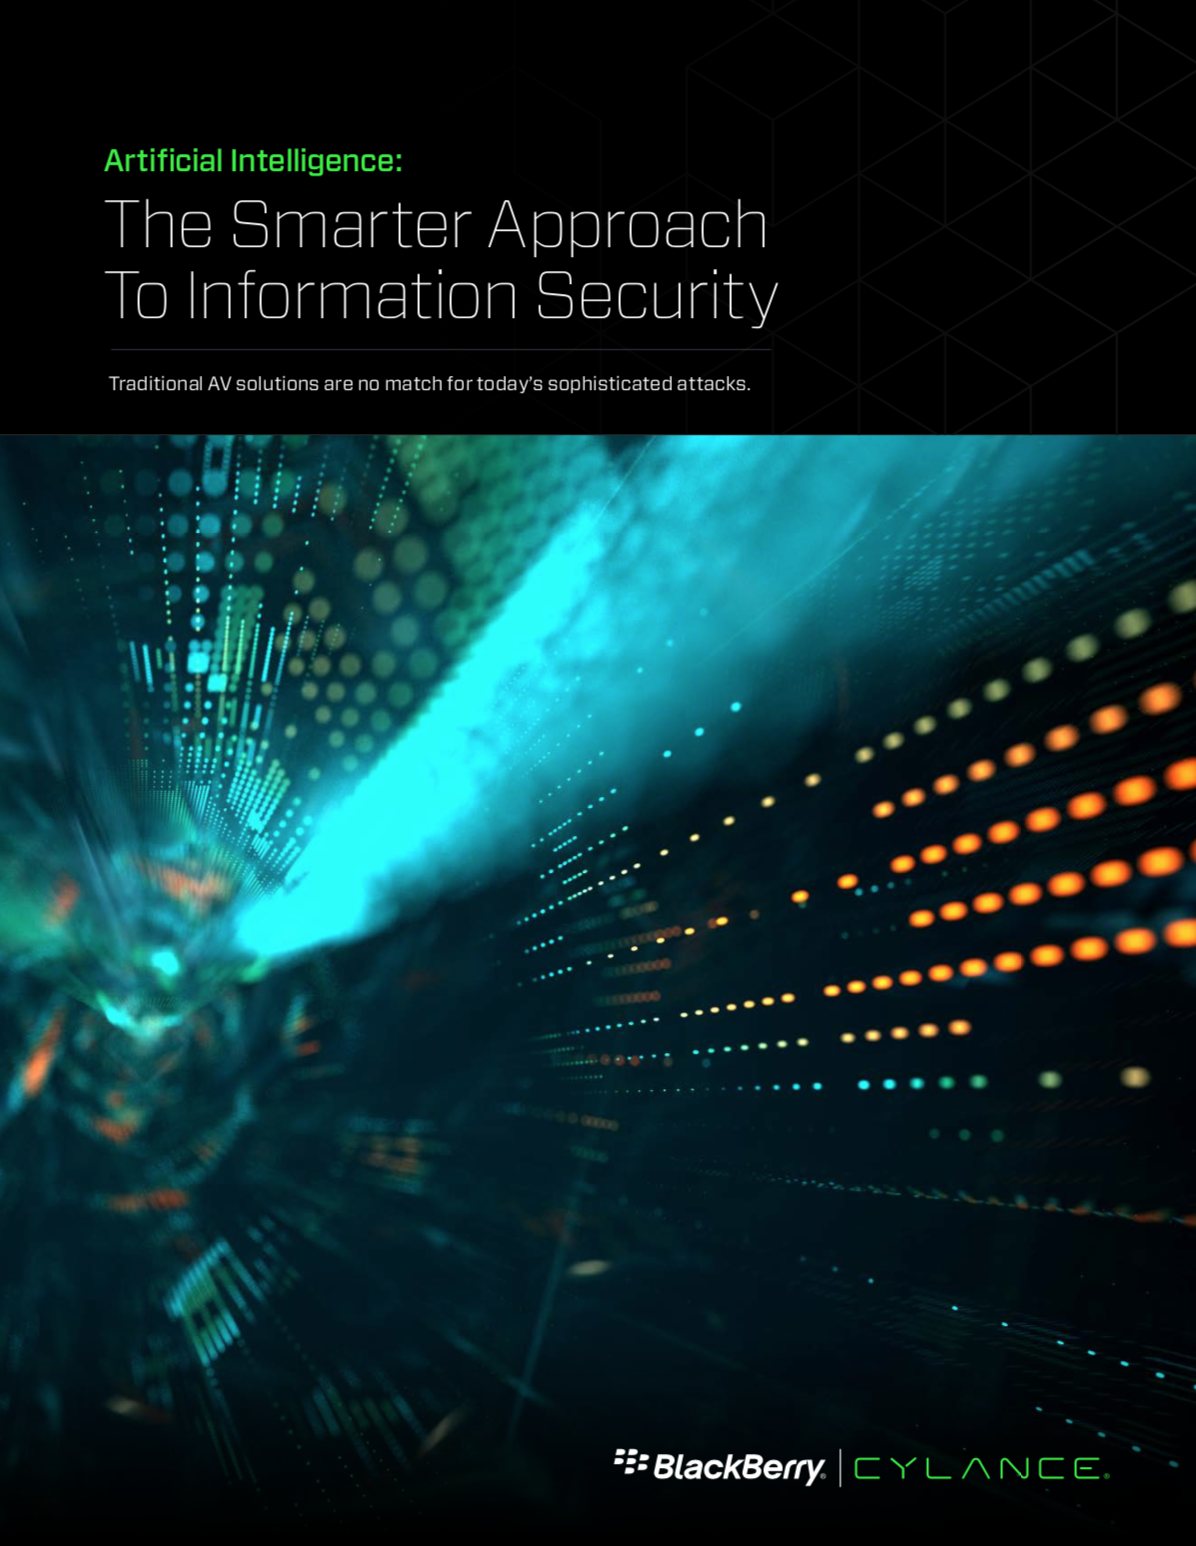 Artificial Intelligence: The Smarter Approach To Information Security